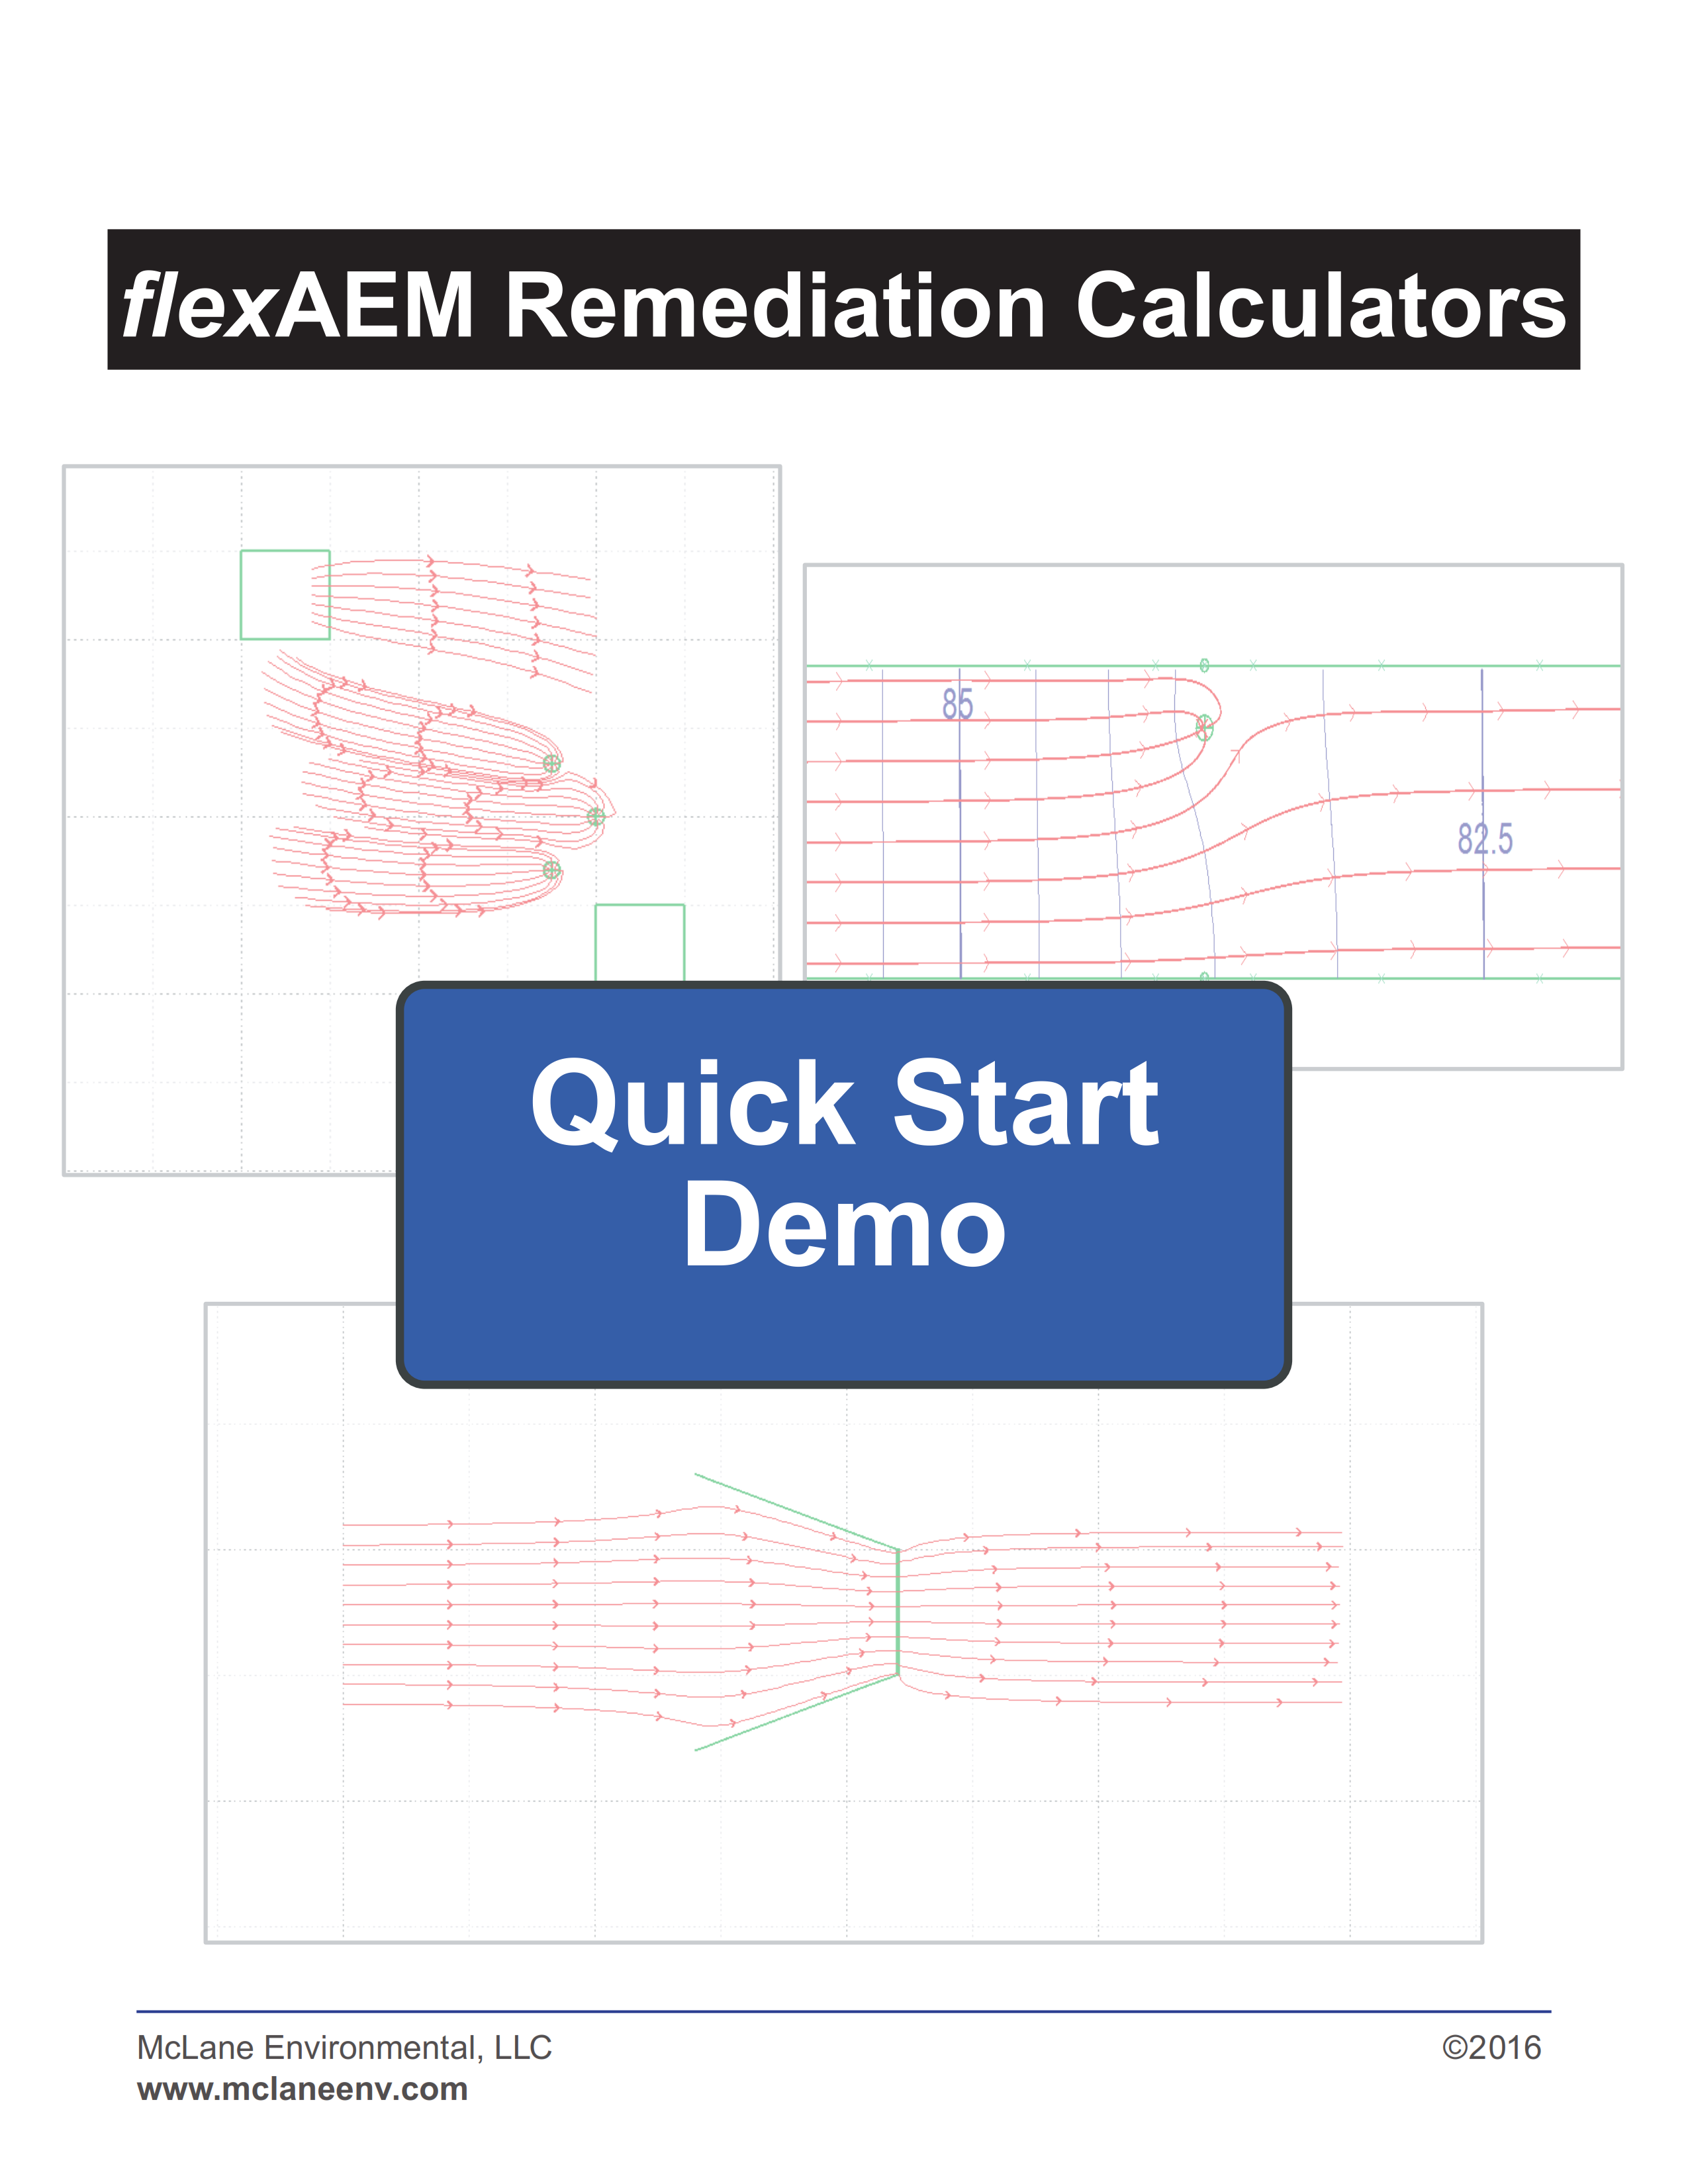 Quick Start Calculator Demo